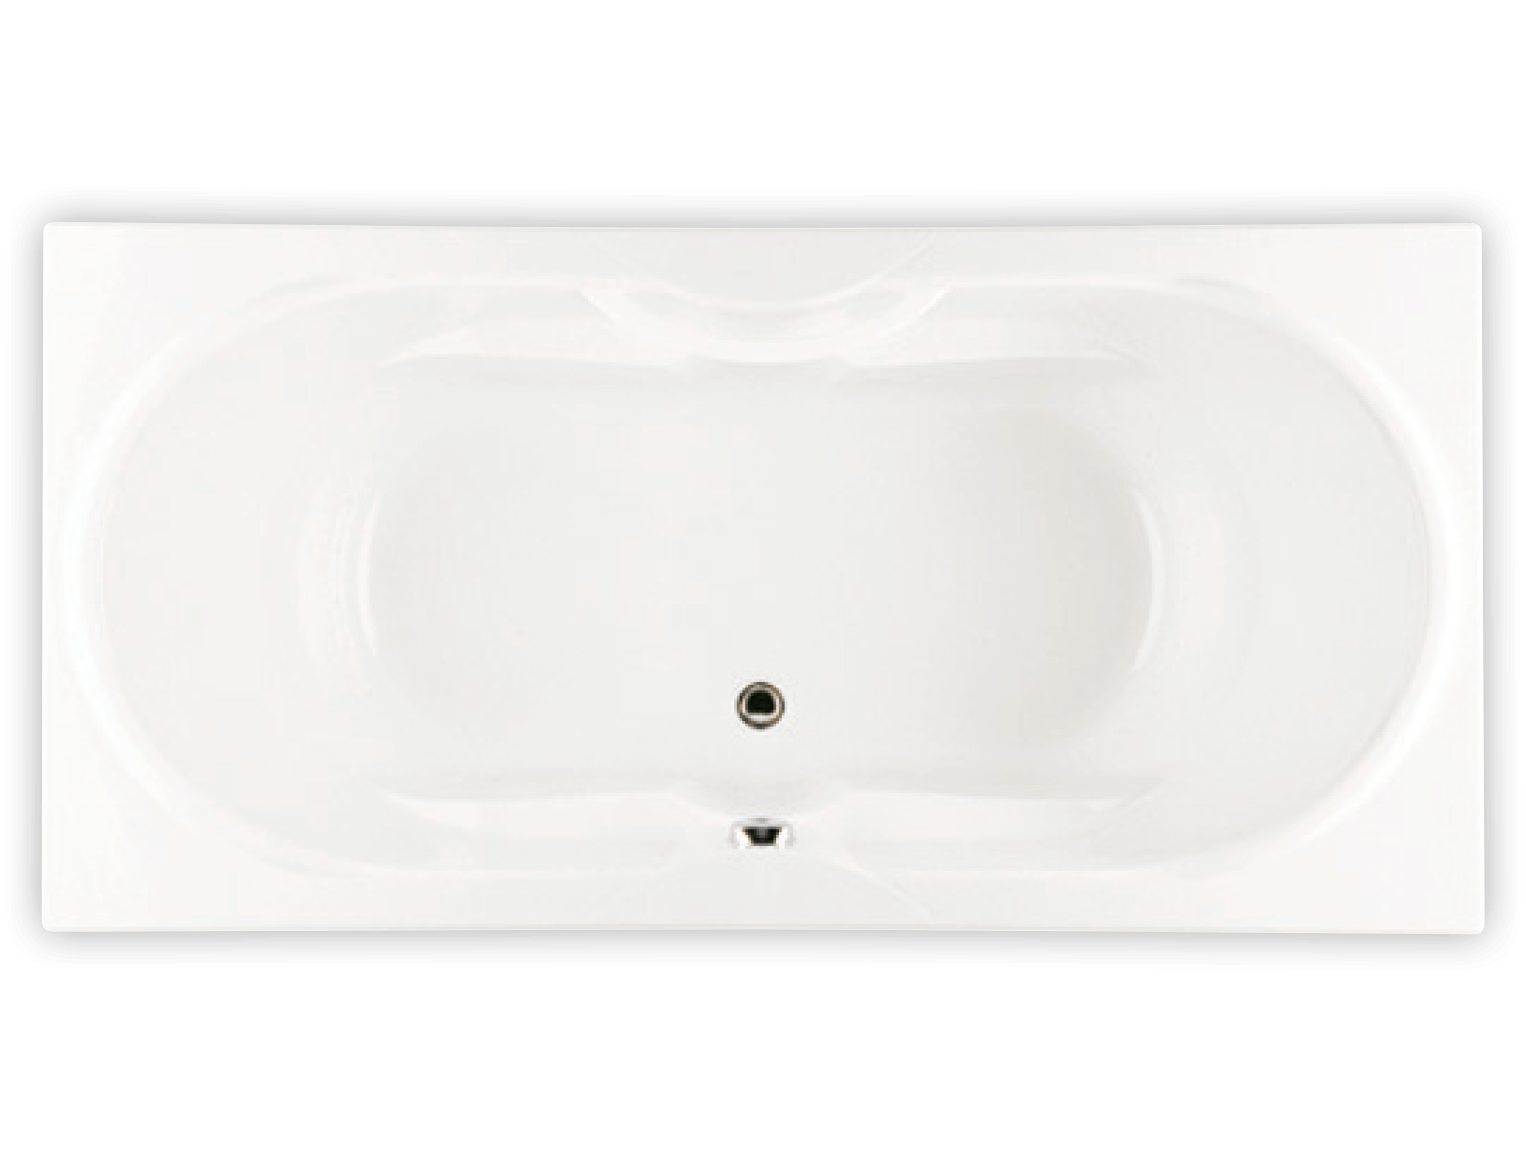 Bainultra Thermal 60 two person drop-in air jet bathtub for your master bathroom